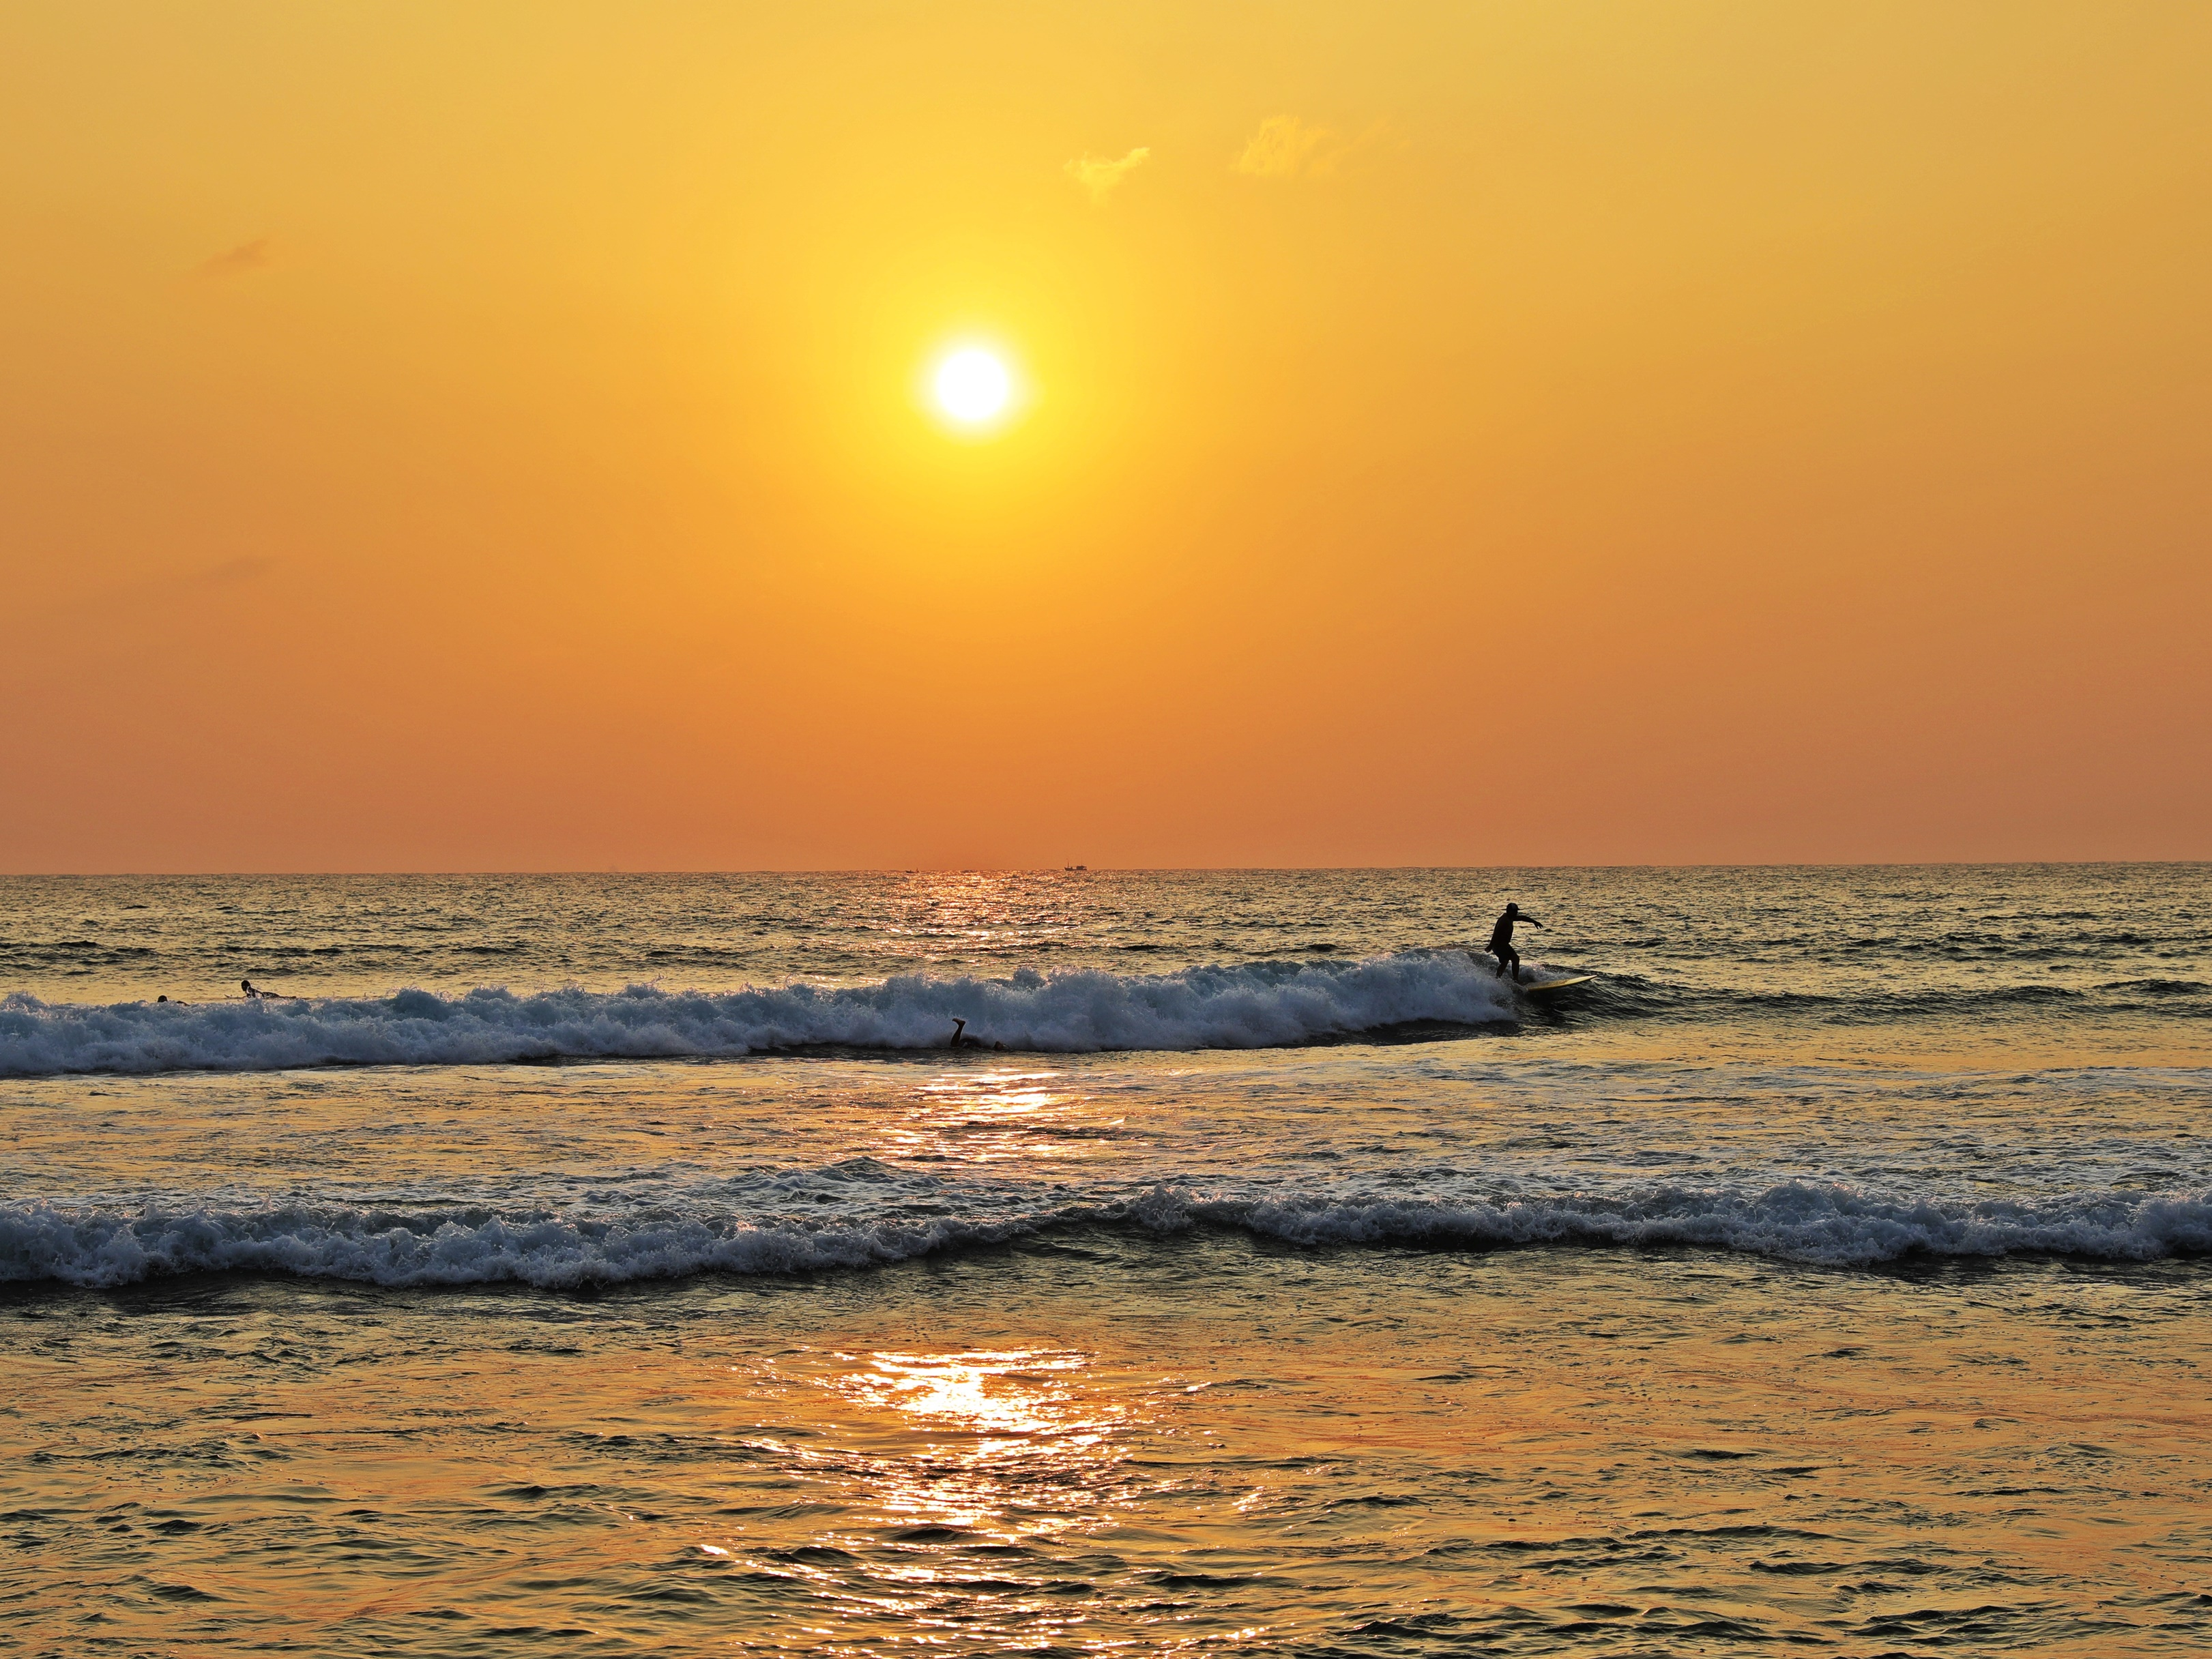 Surfer at sunset, Hikkaduwa